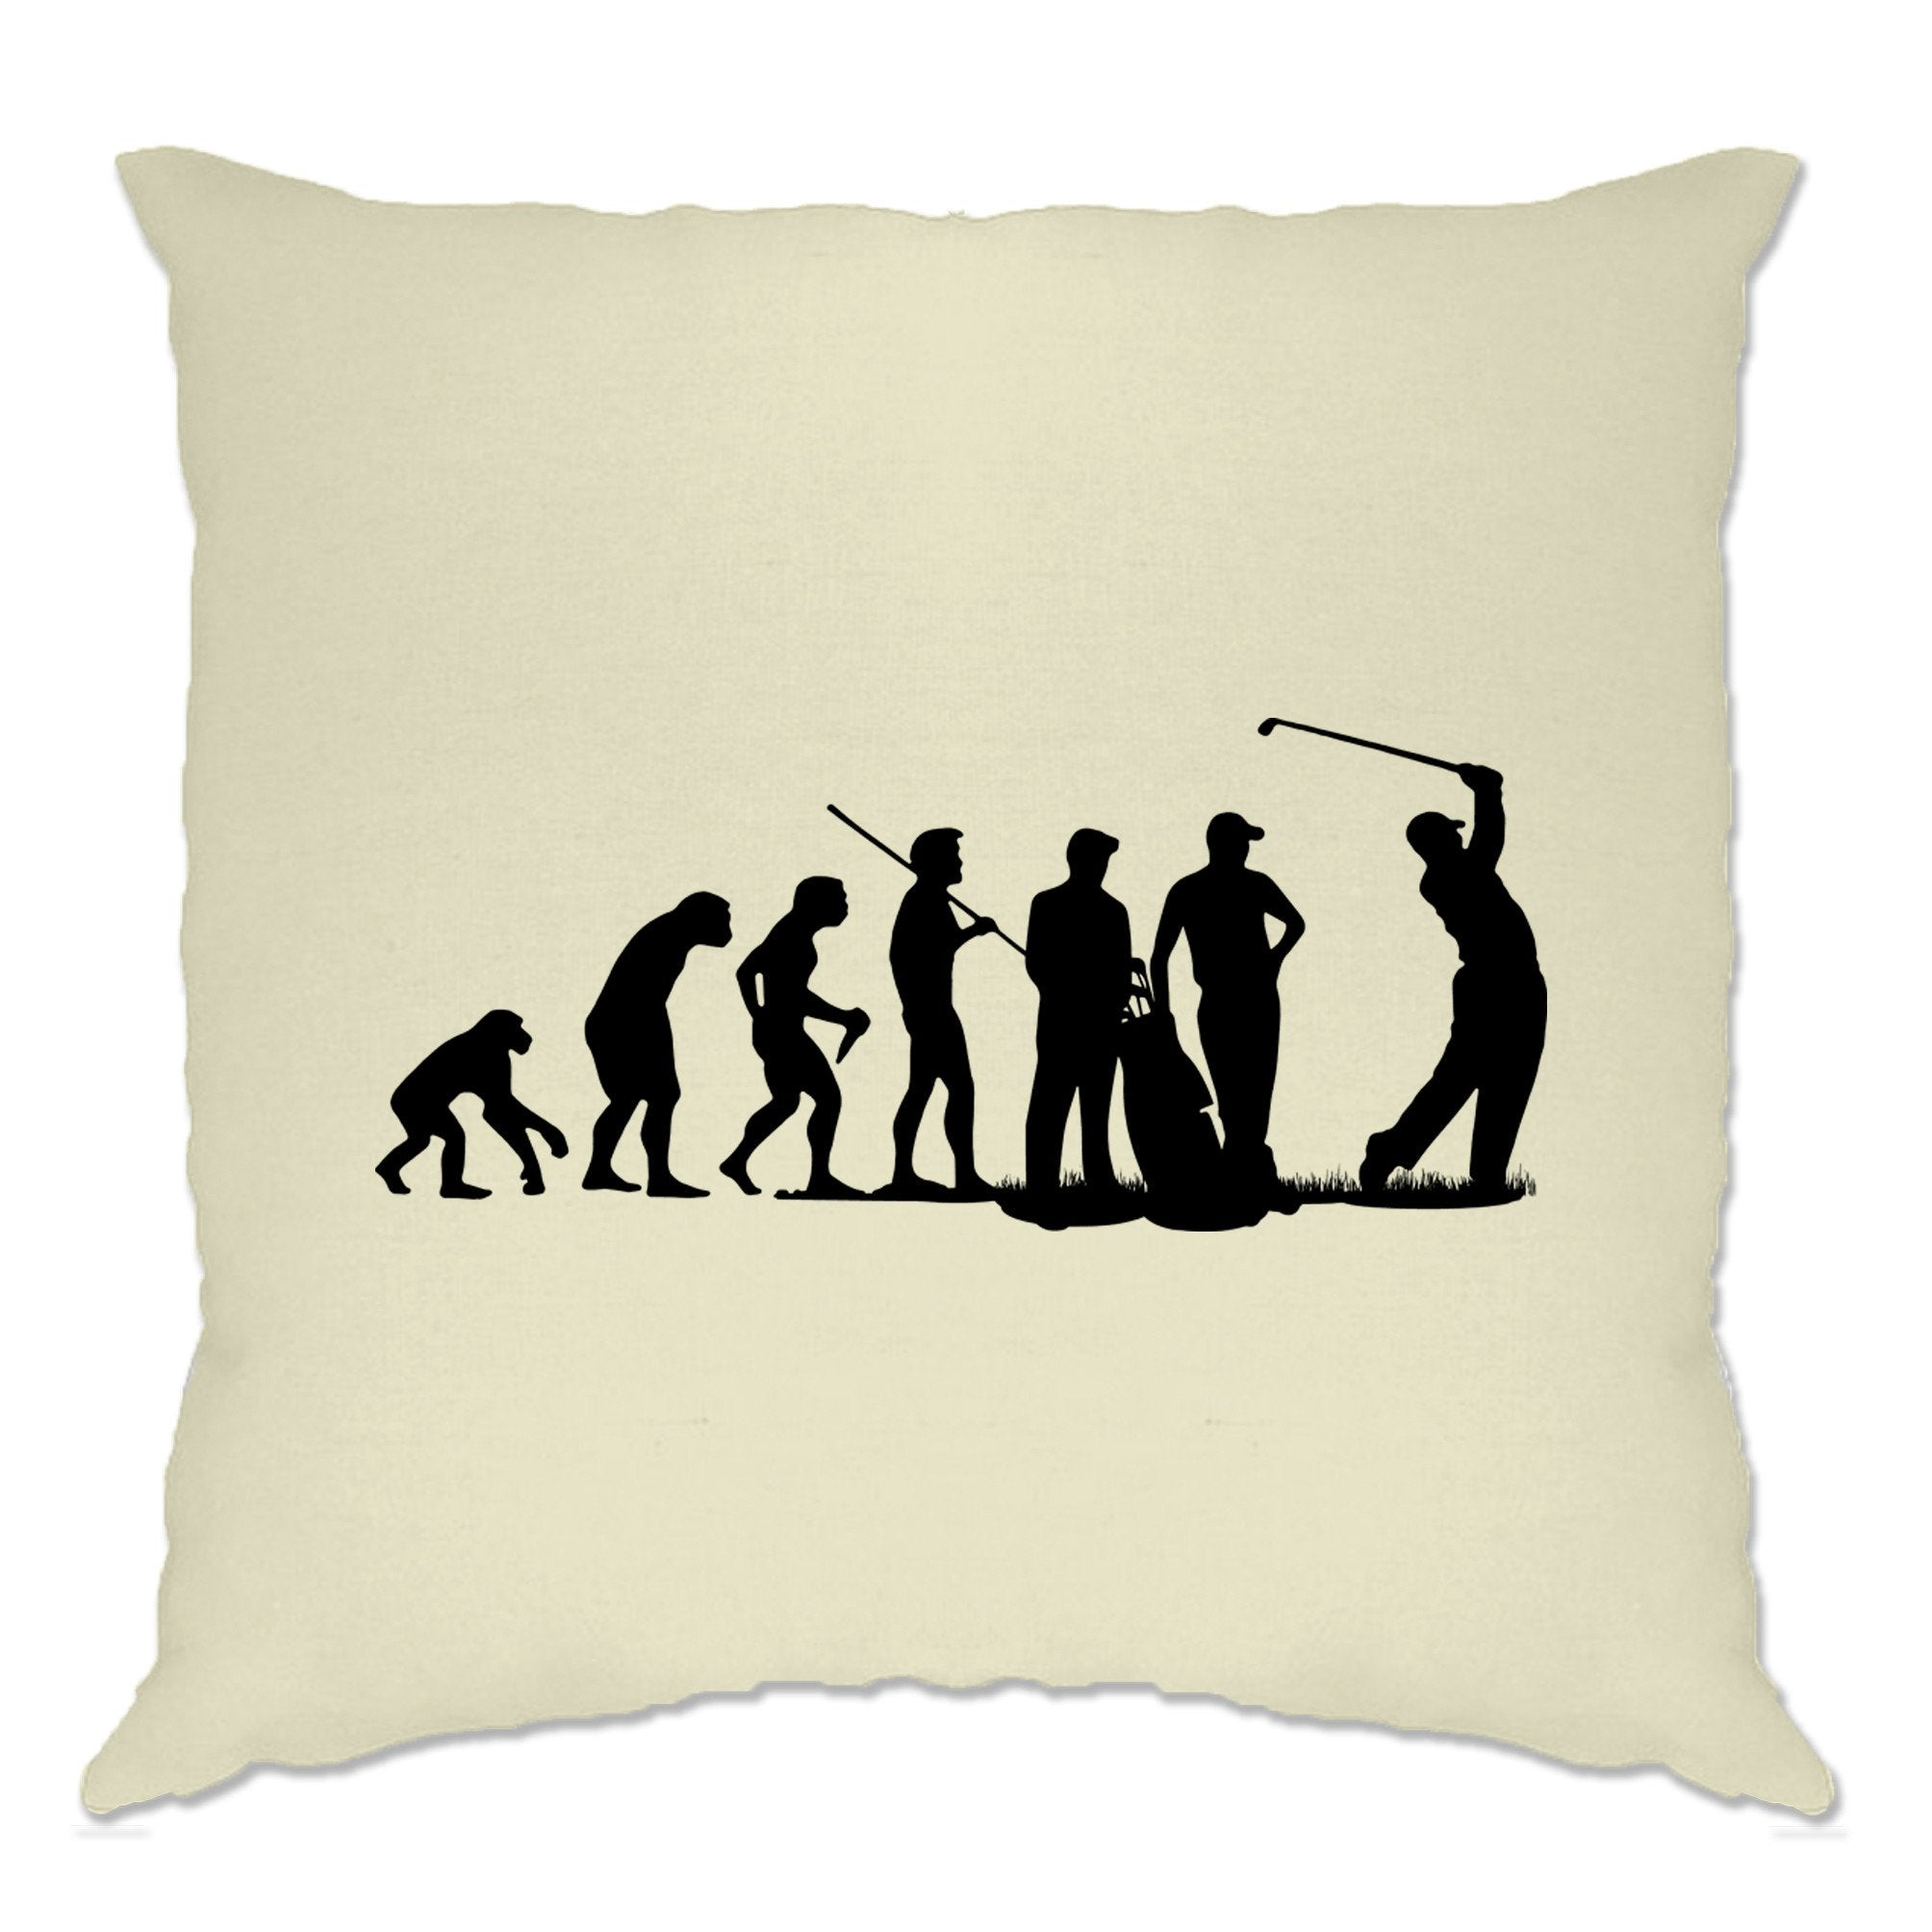 Sports Cushion Cover The Evolution Of A Golfer